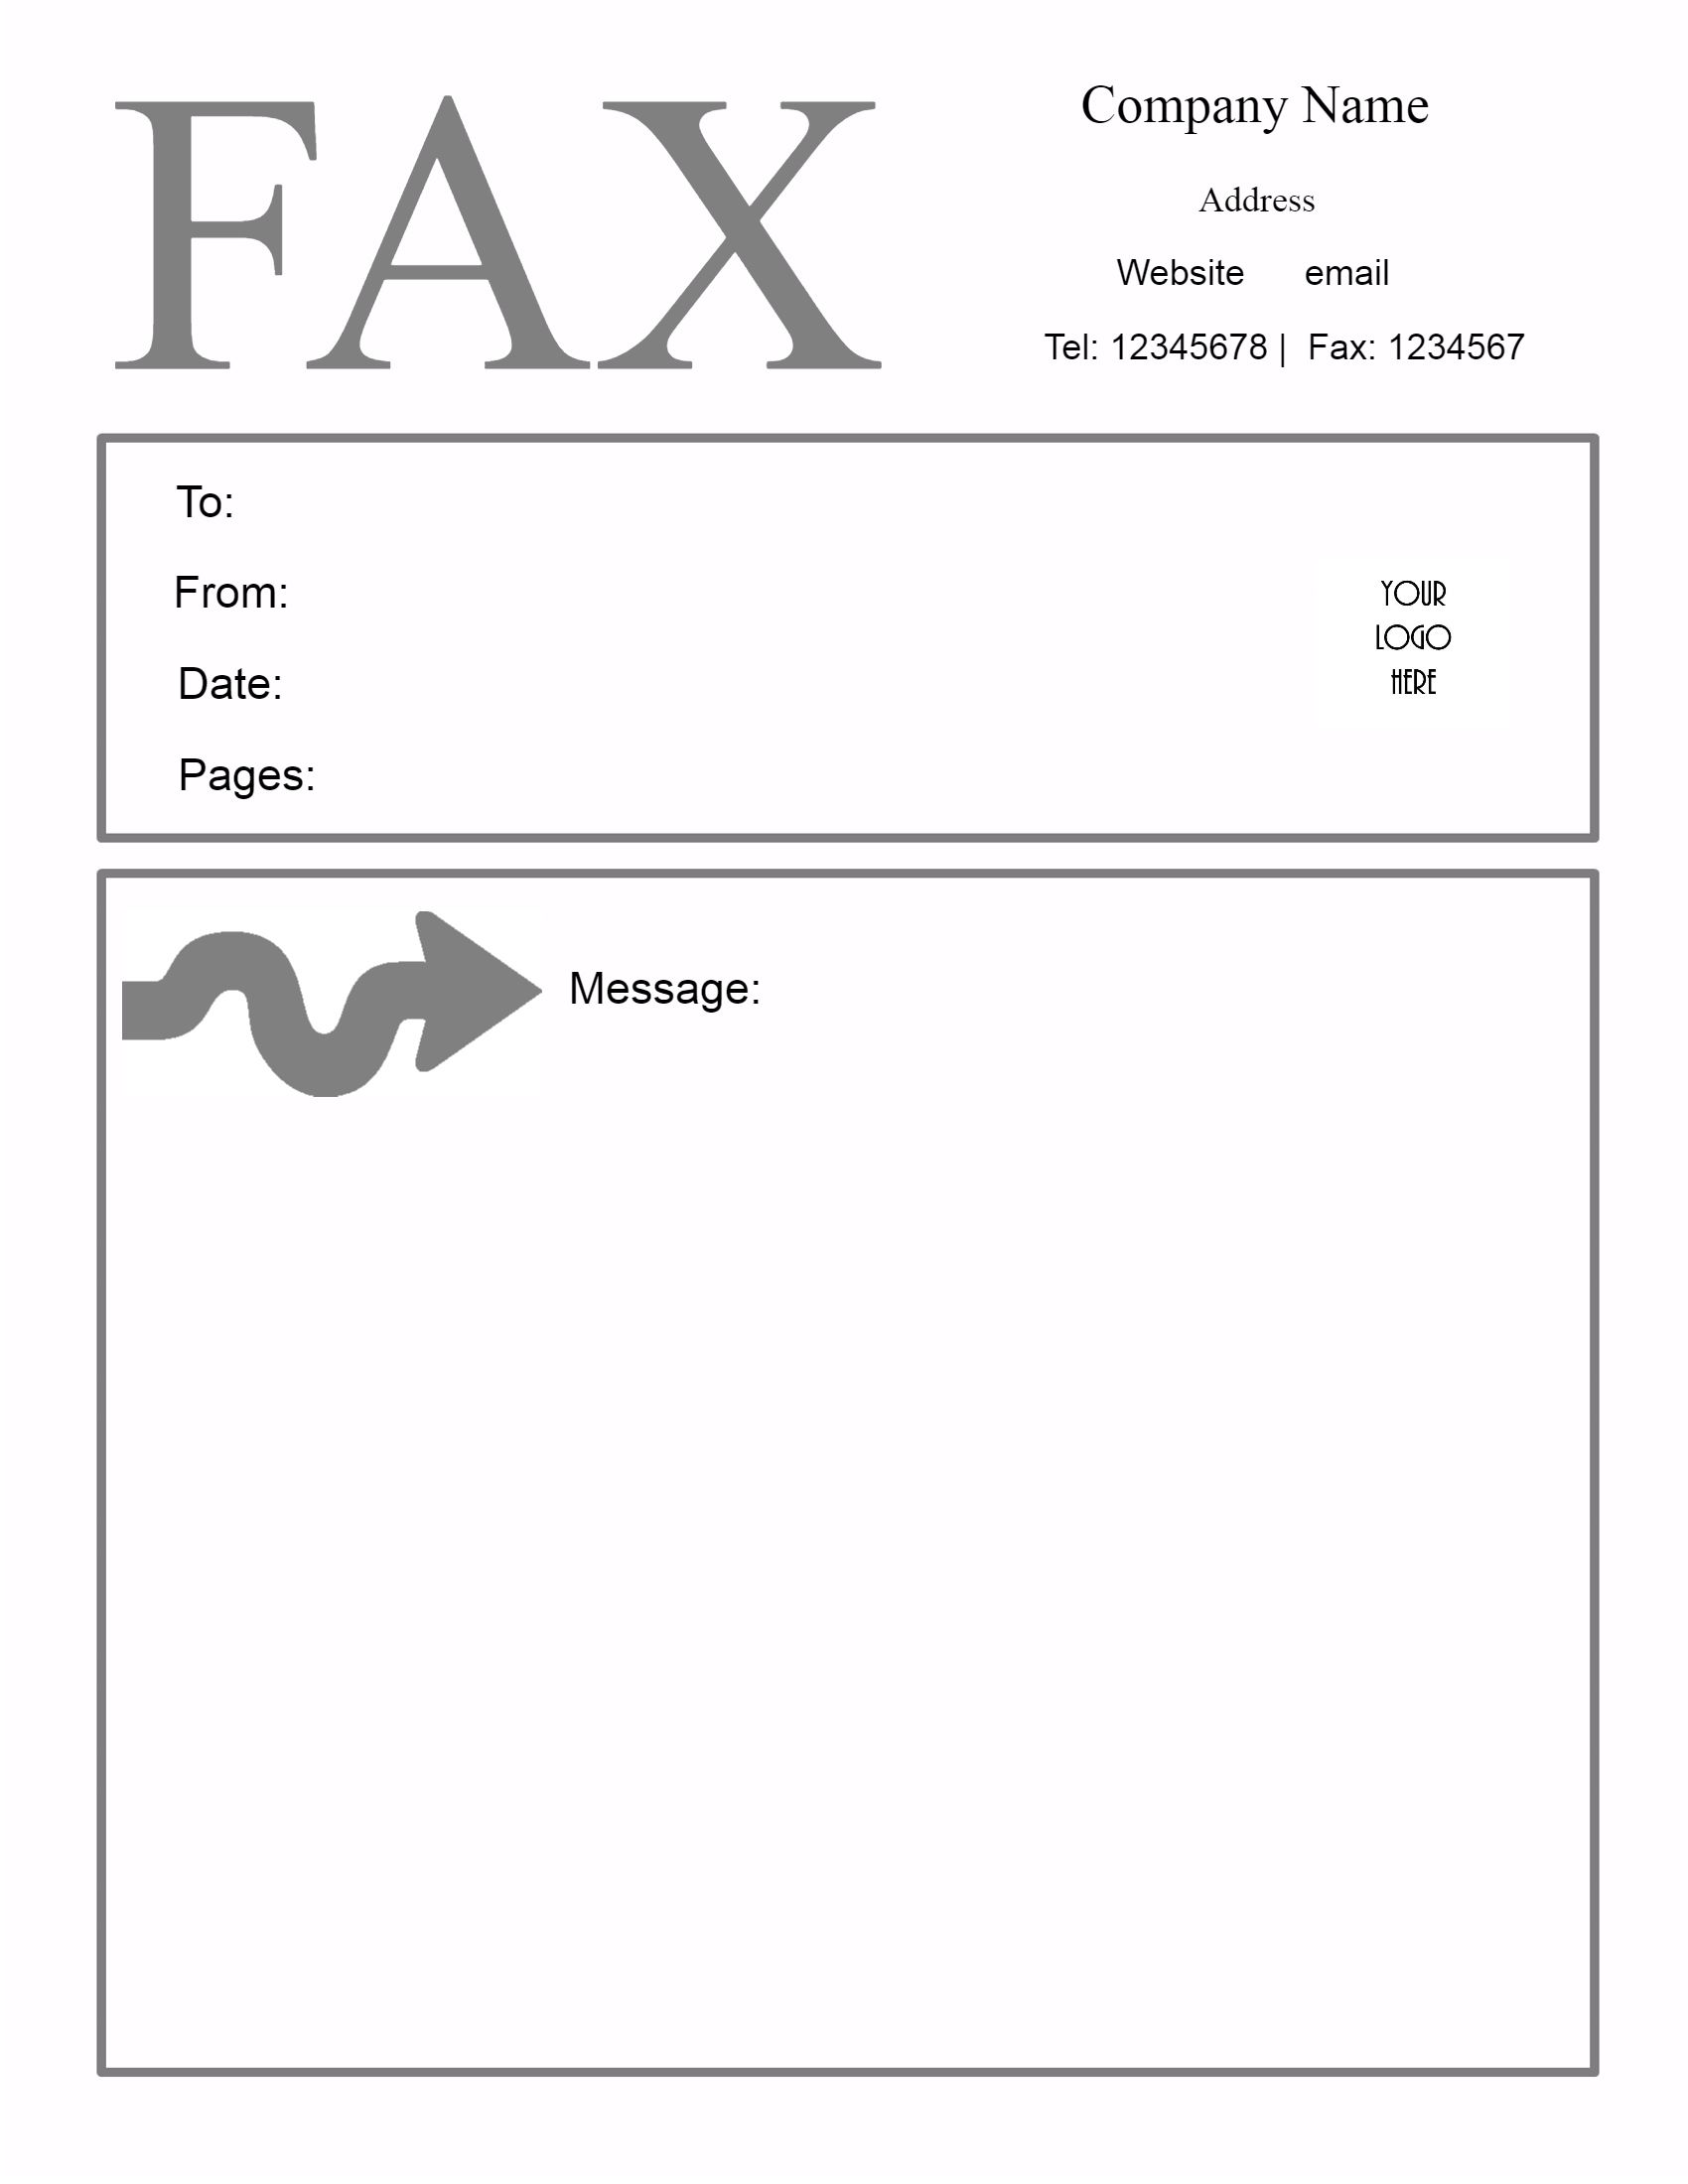 sample fax cover sheet free fax templates - Letter Cover Page